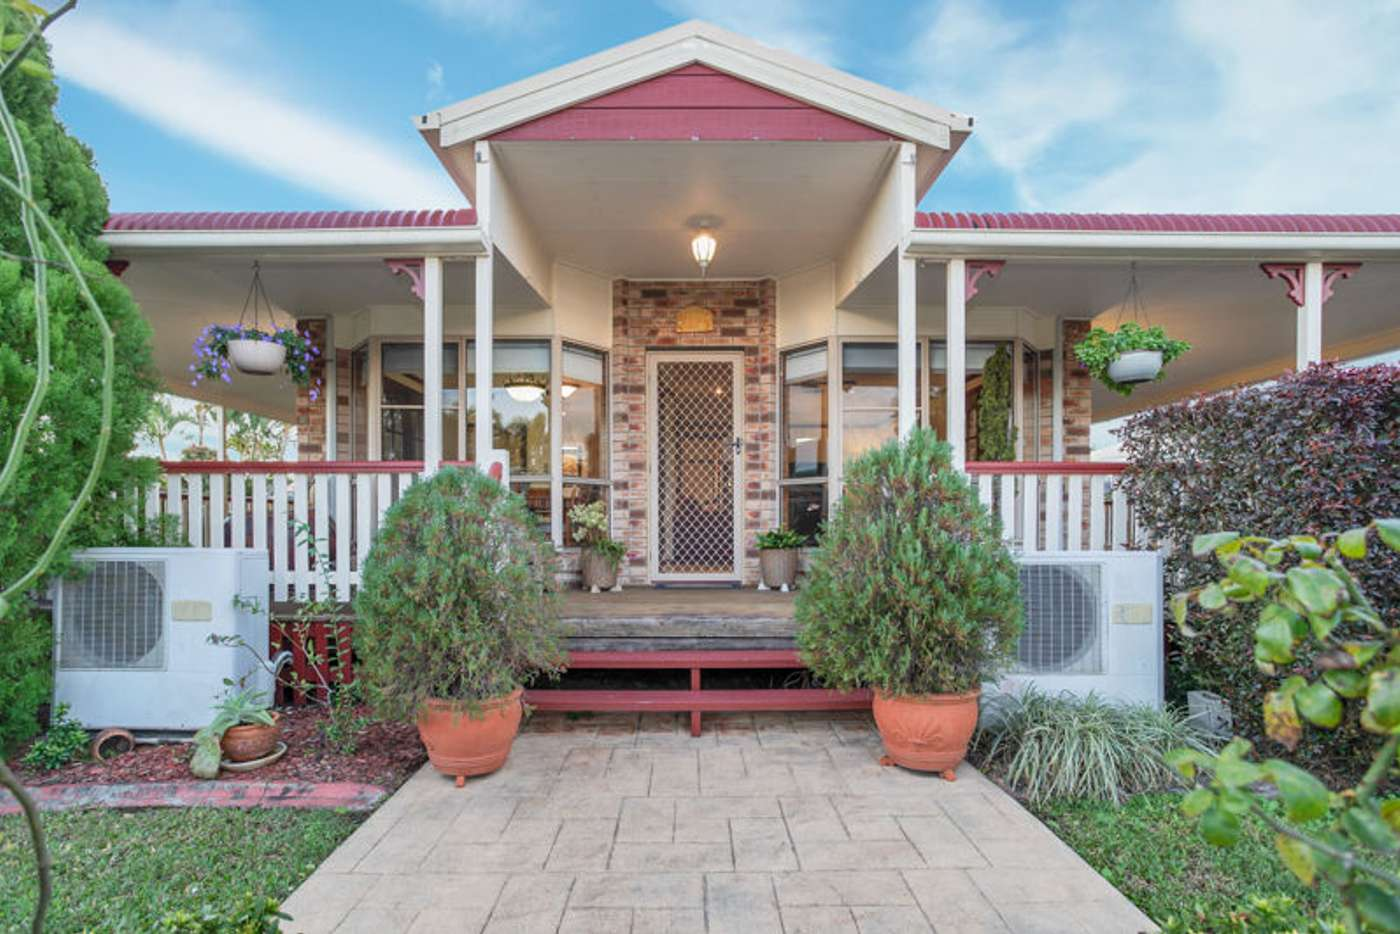 Main view of Homely house listing, 74 Broomdykes Drive, Beaconsfield QLD 4740